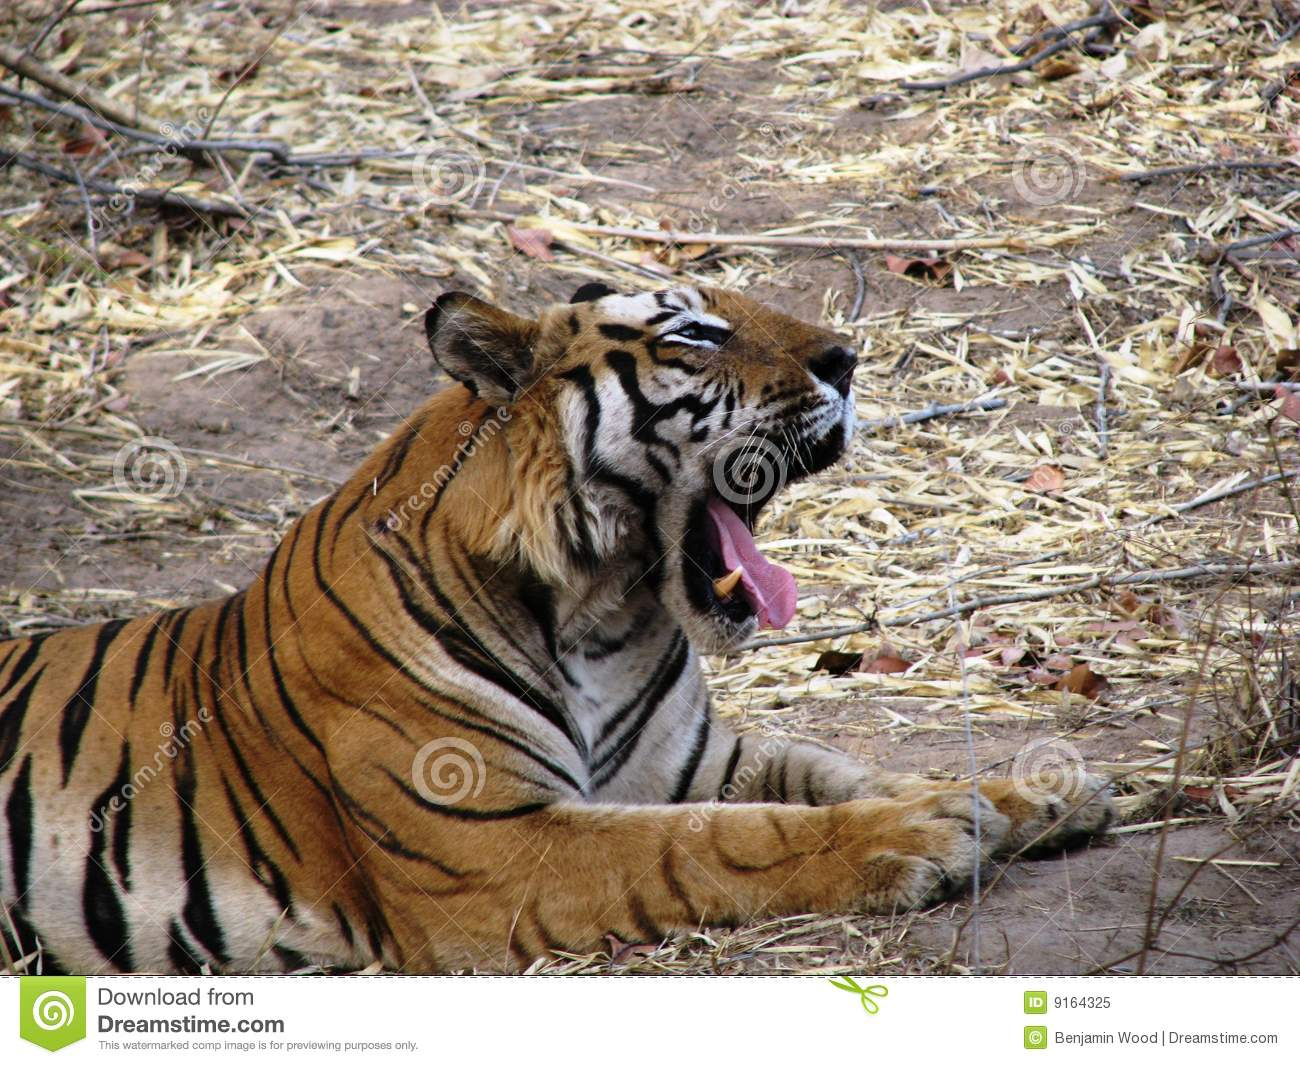 39 best images about Bengal Tiger on Pinterest |Bengal Tiger Tired